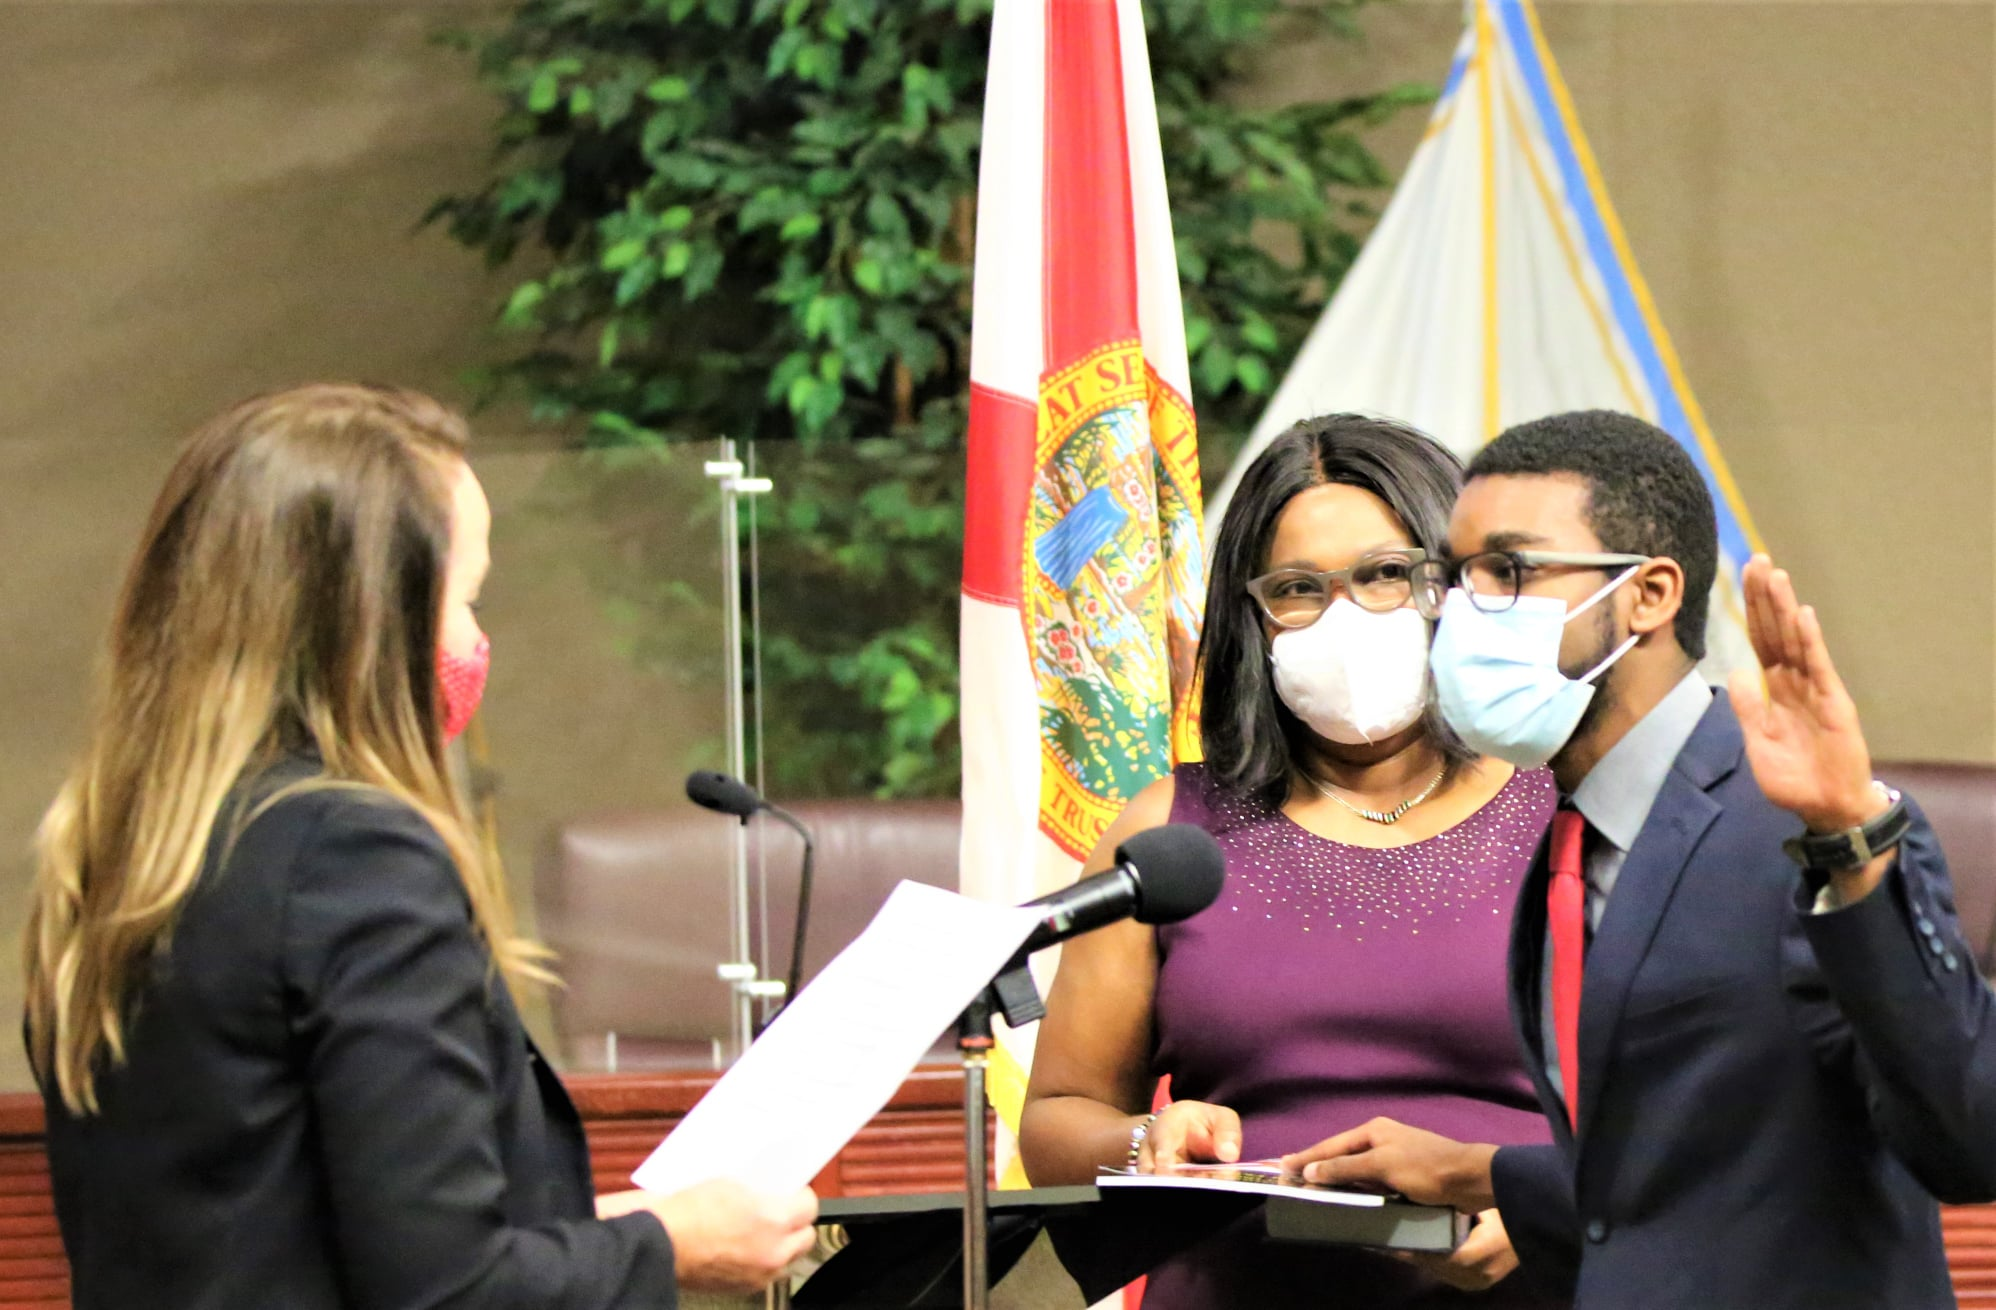 Newly elected Orange Soil & Water Conservation District Supervisor Nate Douglas gets sworn in by newly elected County Commissioner Nicole Johnson on December 28, 2020 in the Orange County Commission Chambers. Photo: Willie David/Florida National News.